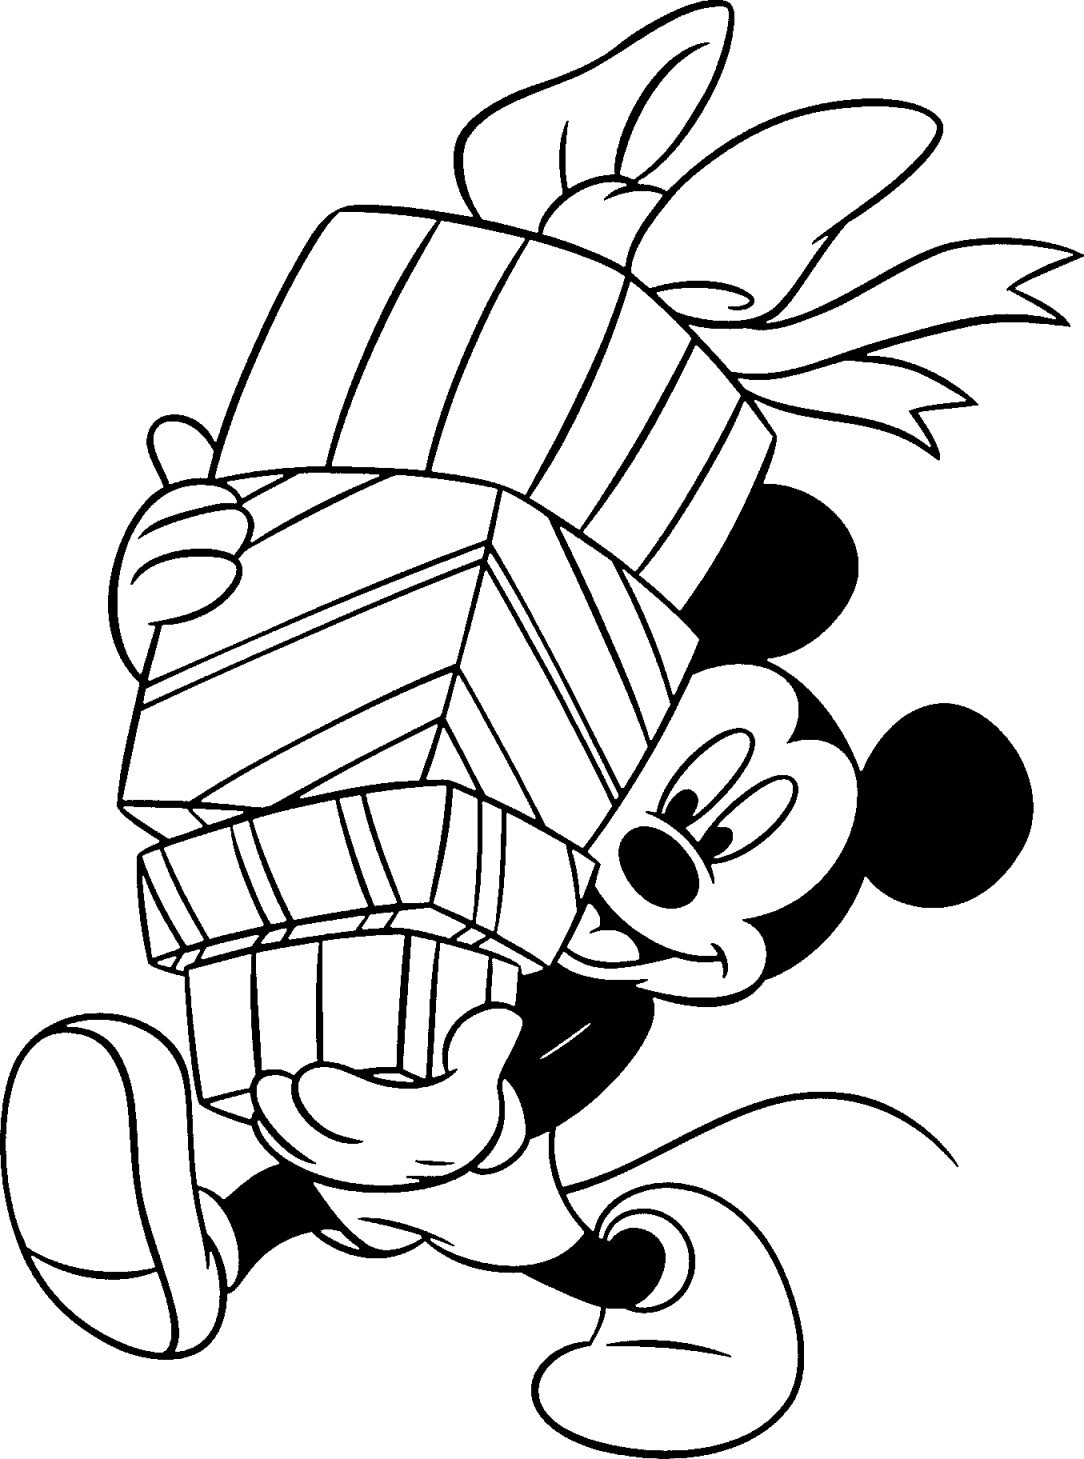 Best ideas about Free Christmas Printable Coloring Sheets For Kids . Save or Pin Free Disney Christmas Printable Coloring Pages for Kids Now.